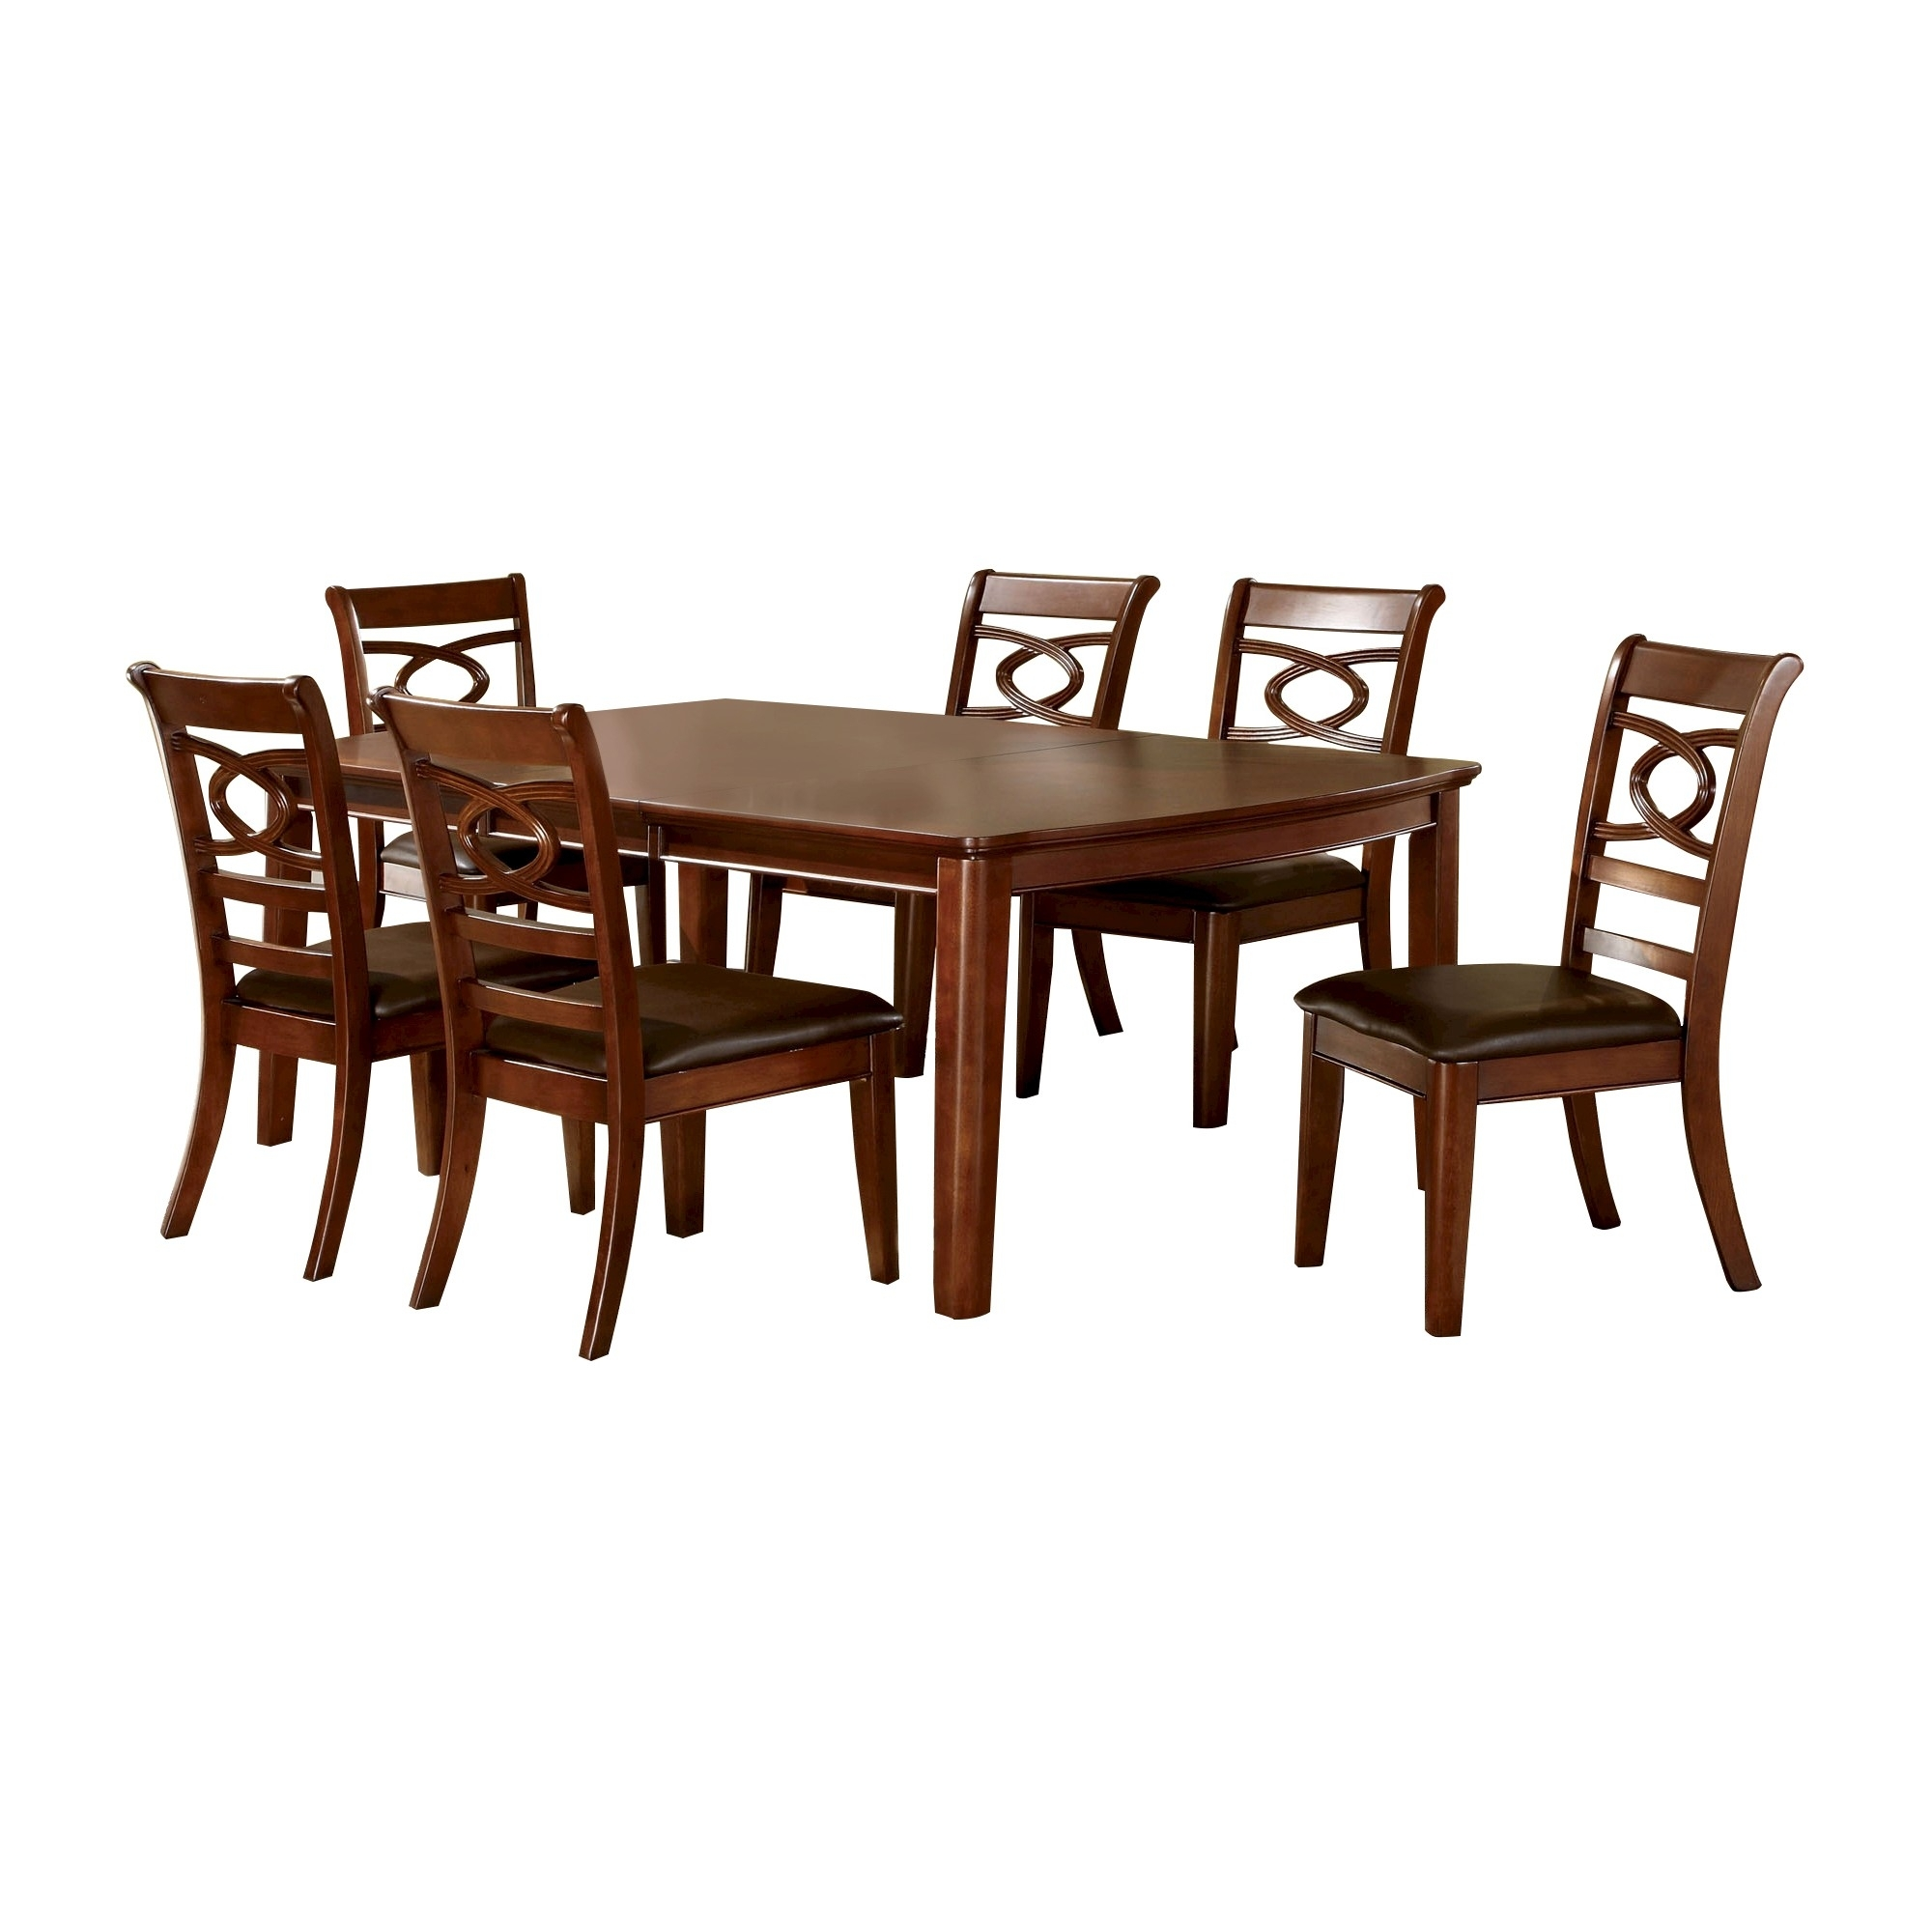 Sun & Pine 7Pc Simple Dining Table Set Wood/brown Cherry | Products Throughout Recent Norwood 7 Piece Rectangle Extension Dining Sets (View 15 of 20)